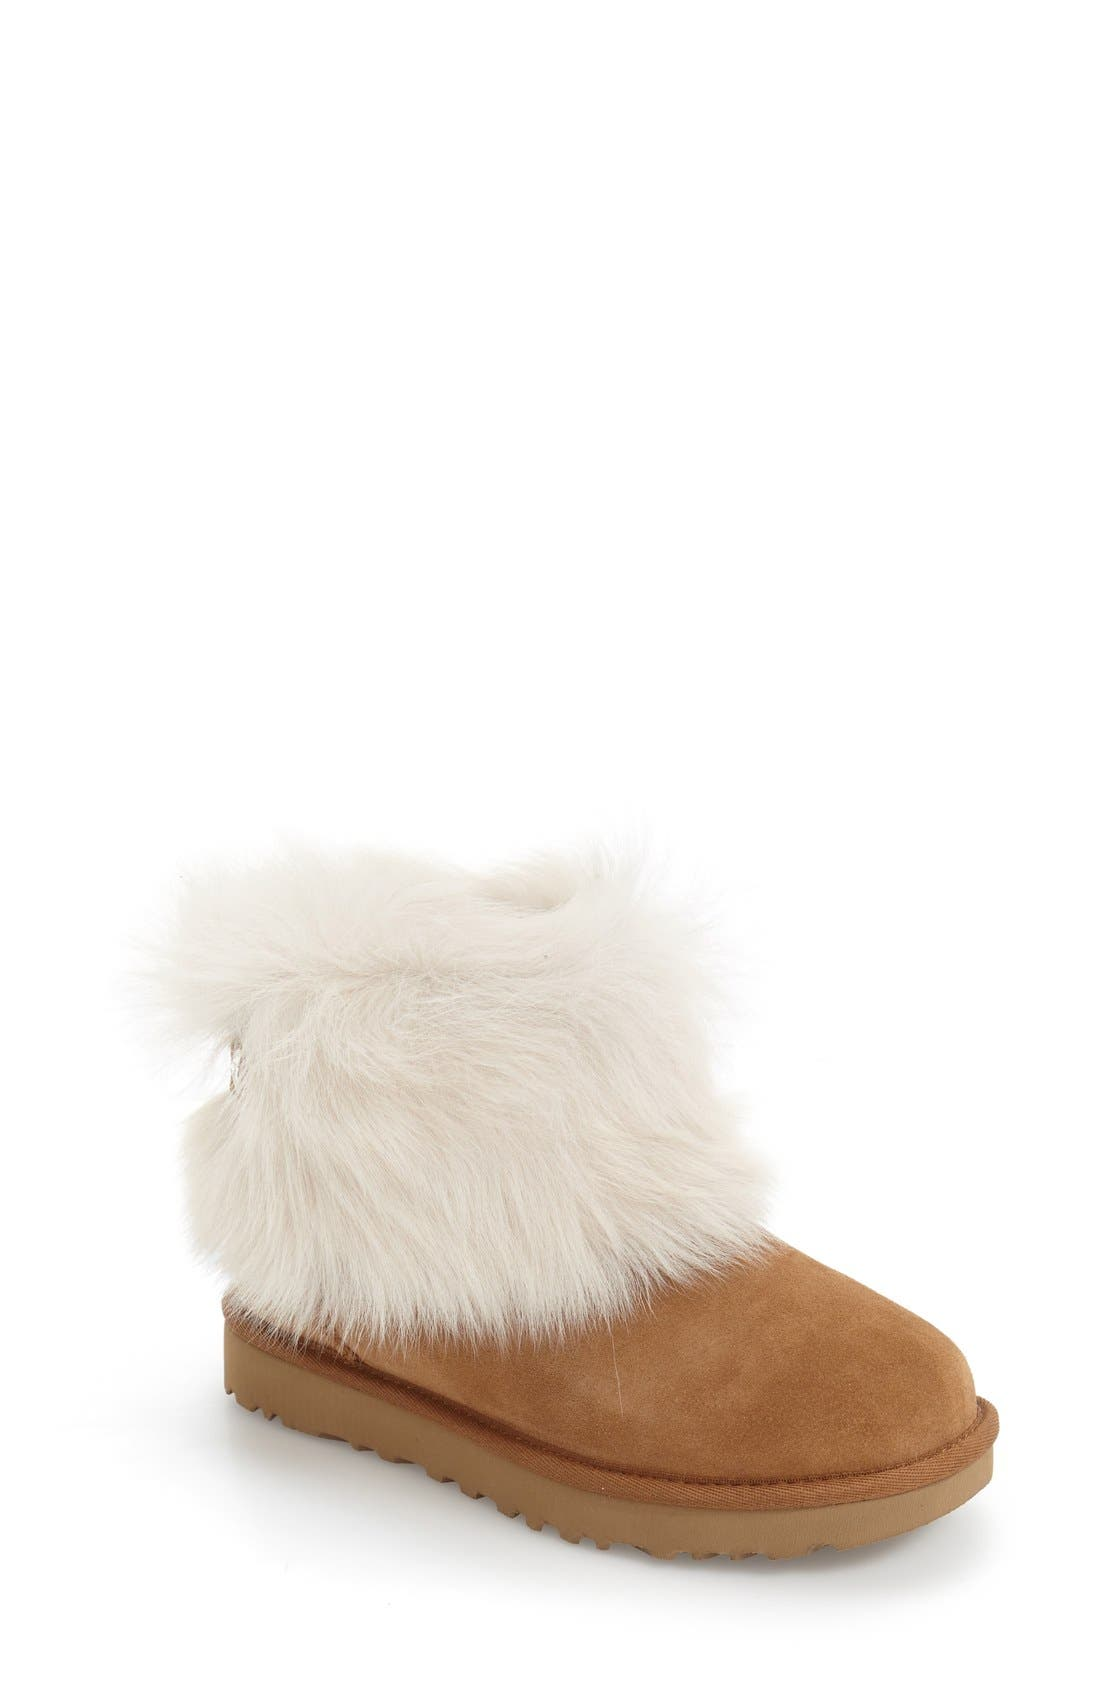 Alternate Image 1 Selected - UGG® 'Valentina' Genuine Shearling Cuff Boot (Women)